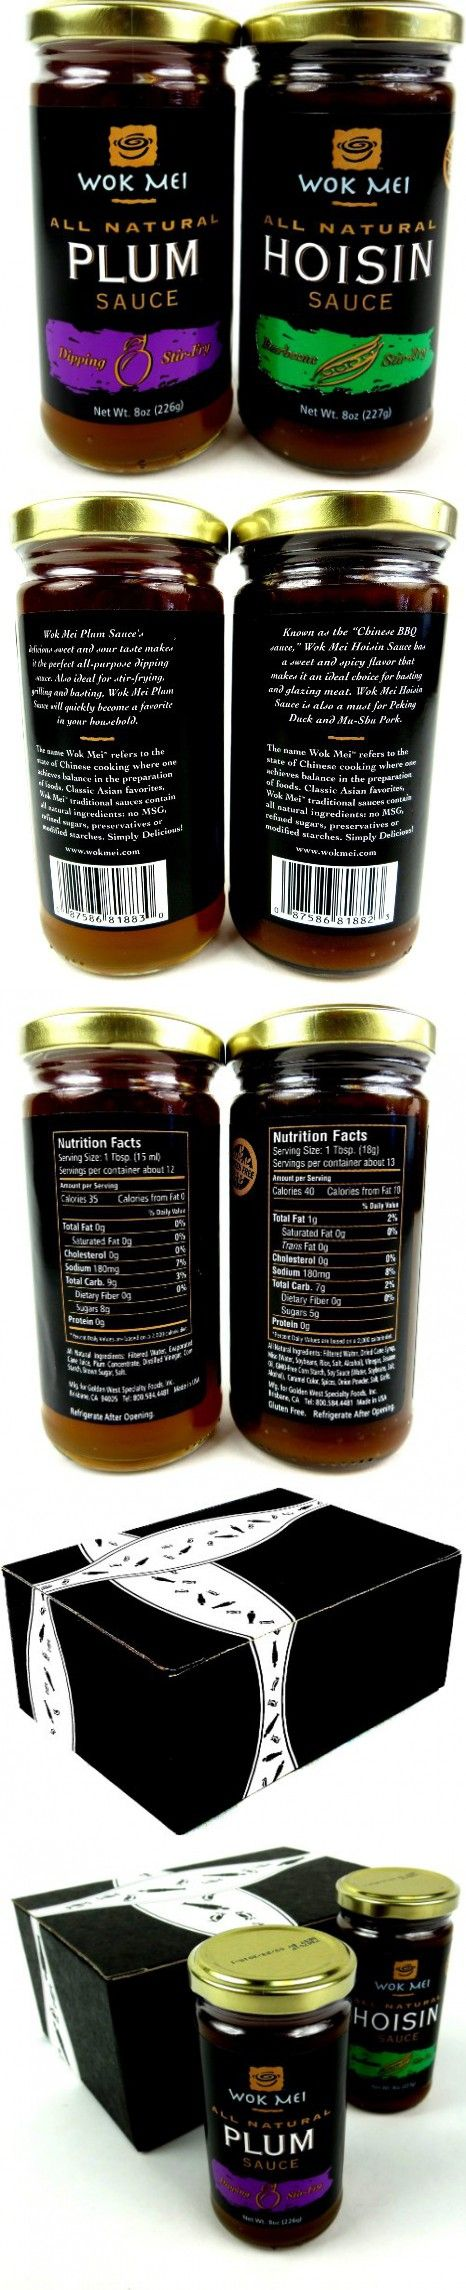 Wok Mei Gluten Free Sauces 2-Flavor Variety: One 8 oz Jar Each of Hoisin and Plum in a BlackTie Box (2 Items Total)